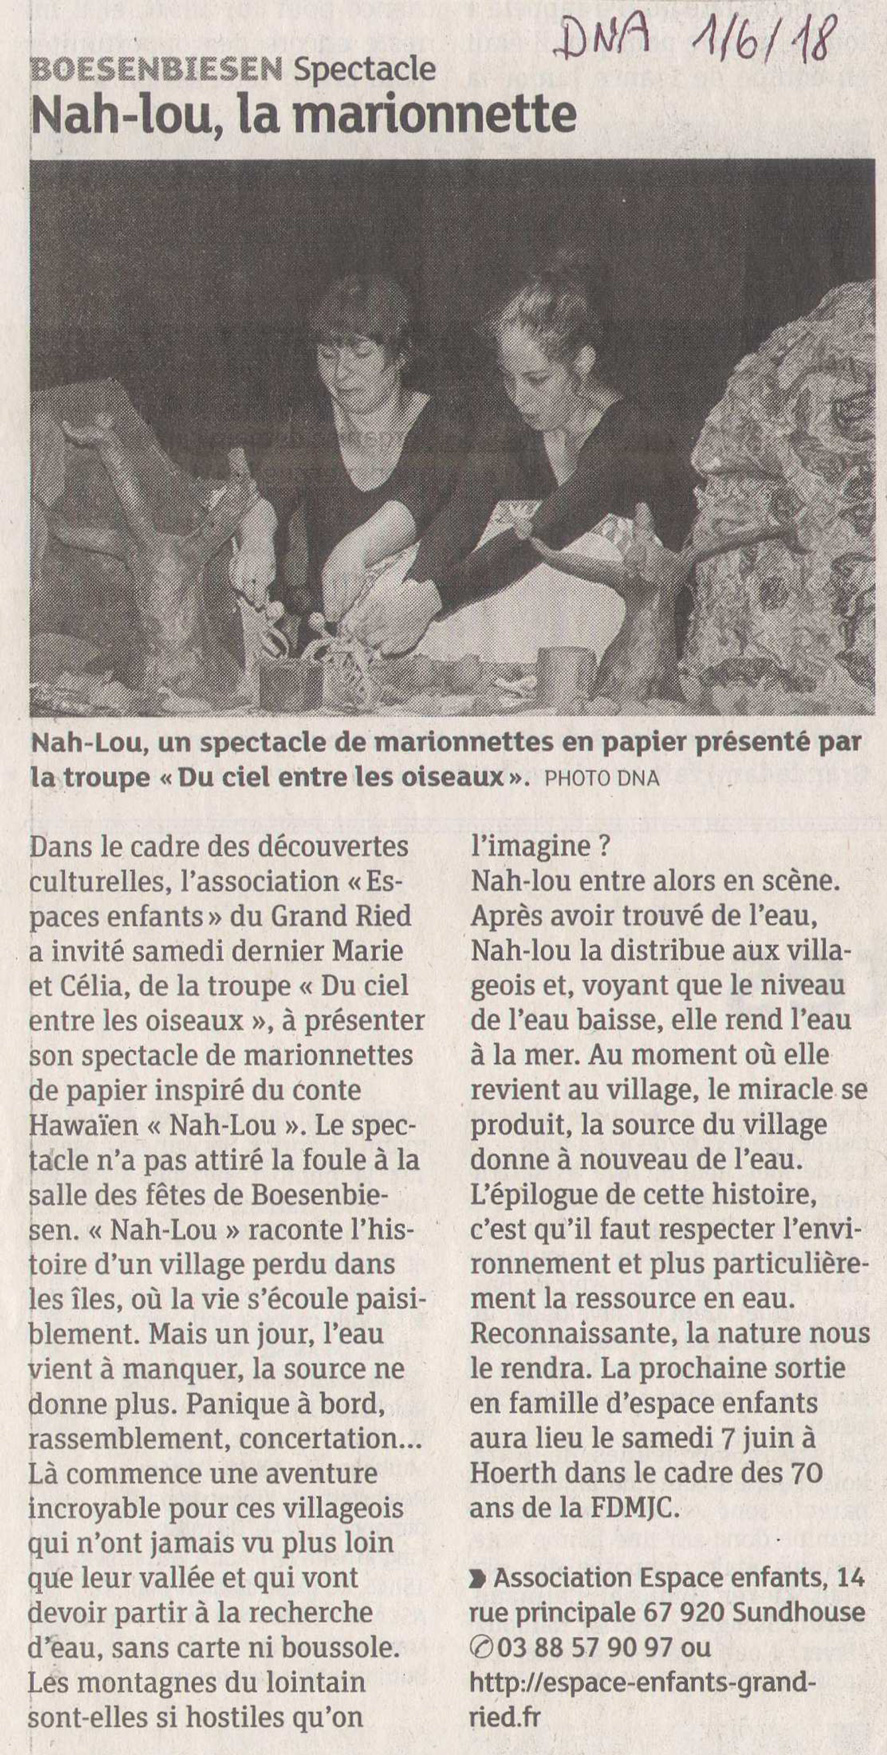 20180601 Spectacle Marionnettes Article Dna - Presse